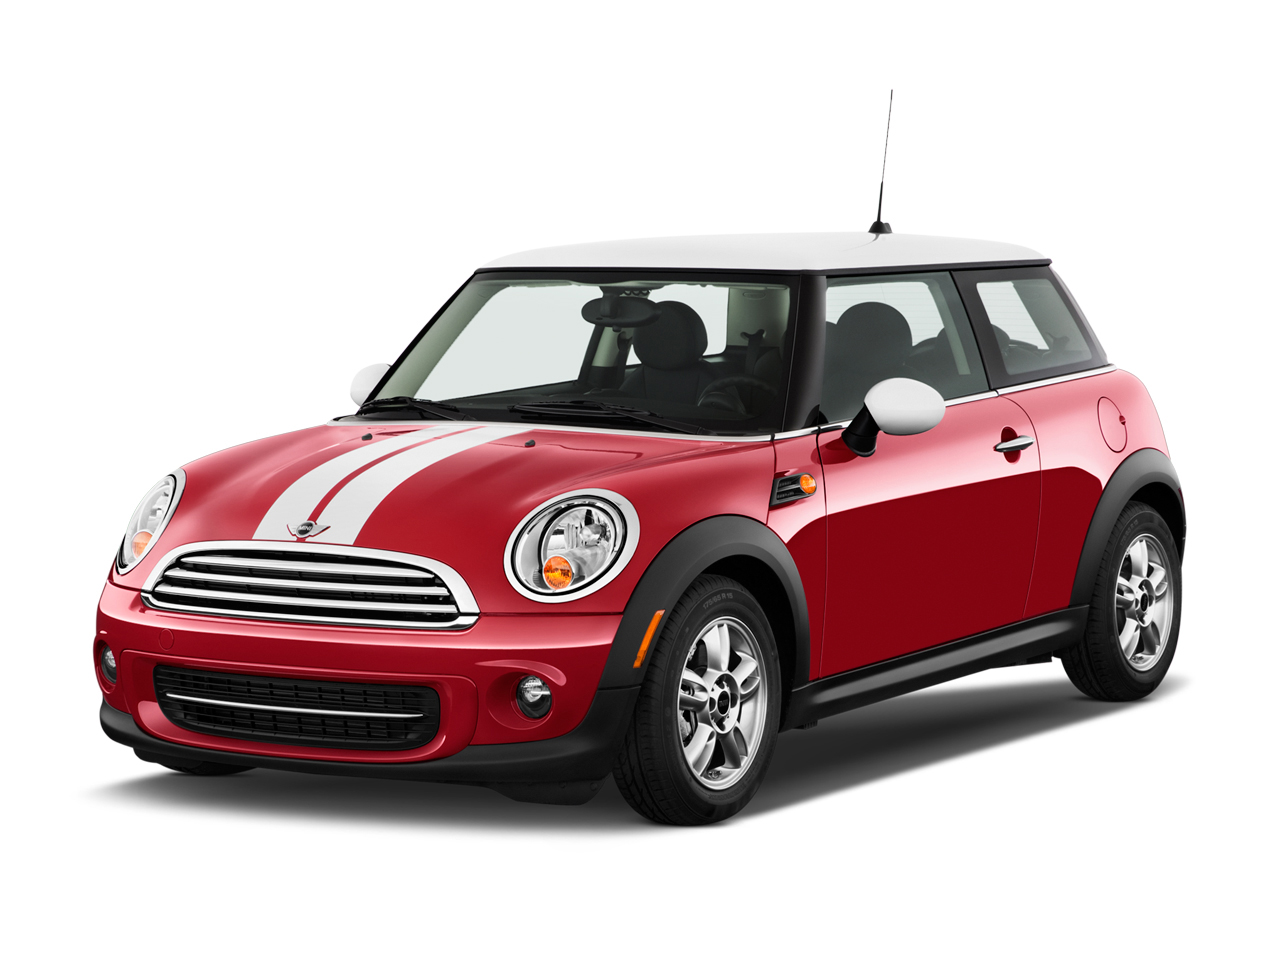 Mini Cooper Houston >> 2013 MINI Cooper Quality Review - The Car Connection